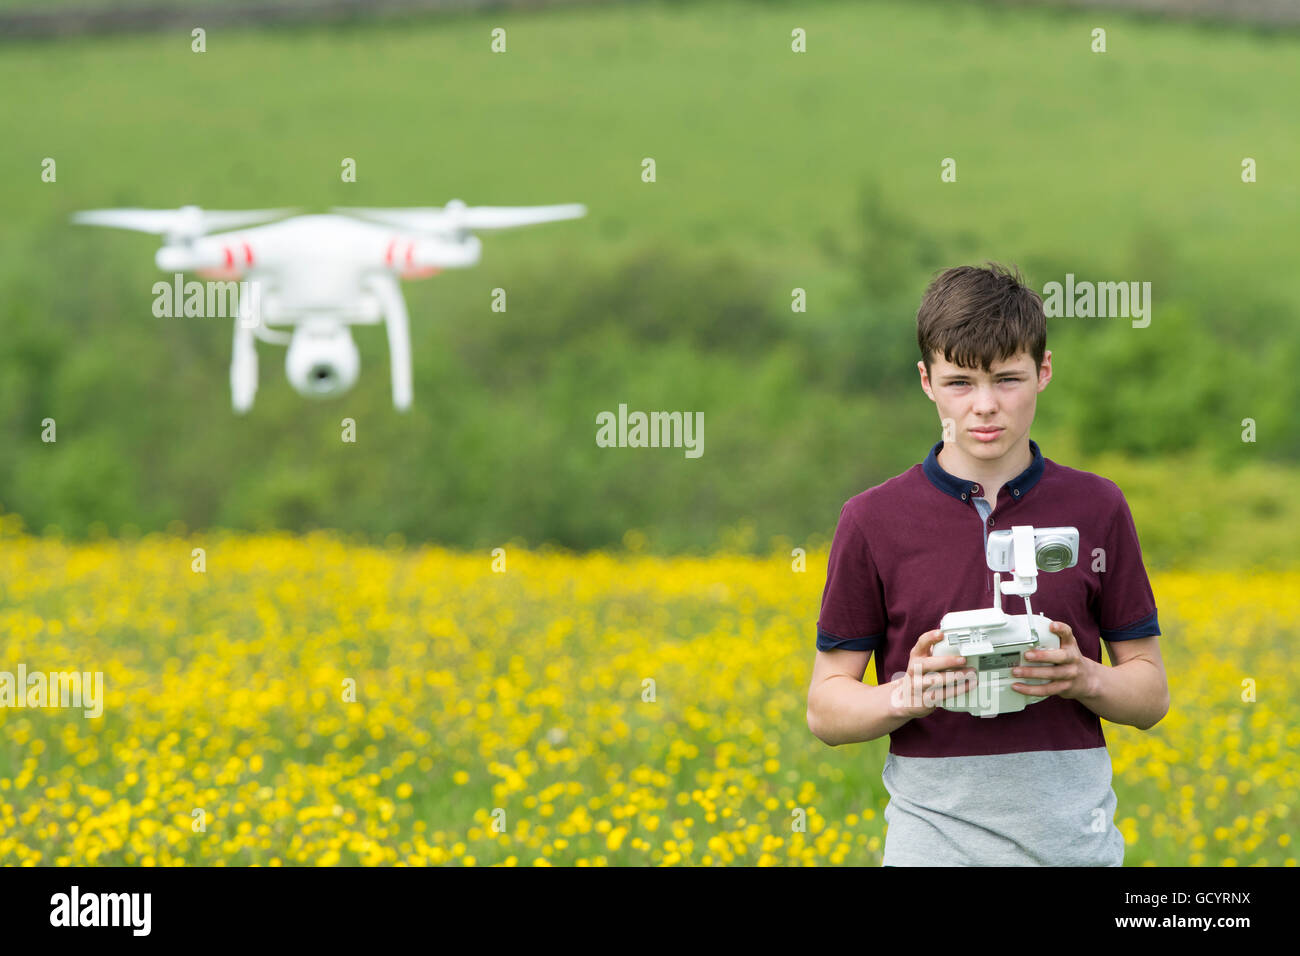 Teenage boy operating a quadcopter drone in countryside, UK. - Stock Image